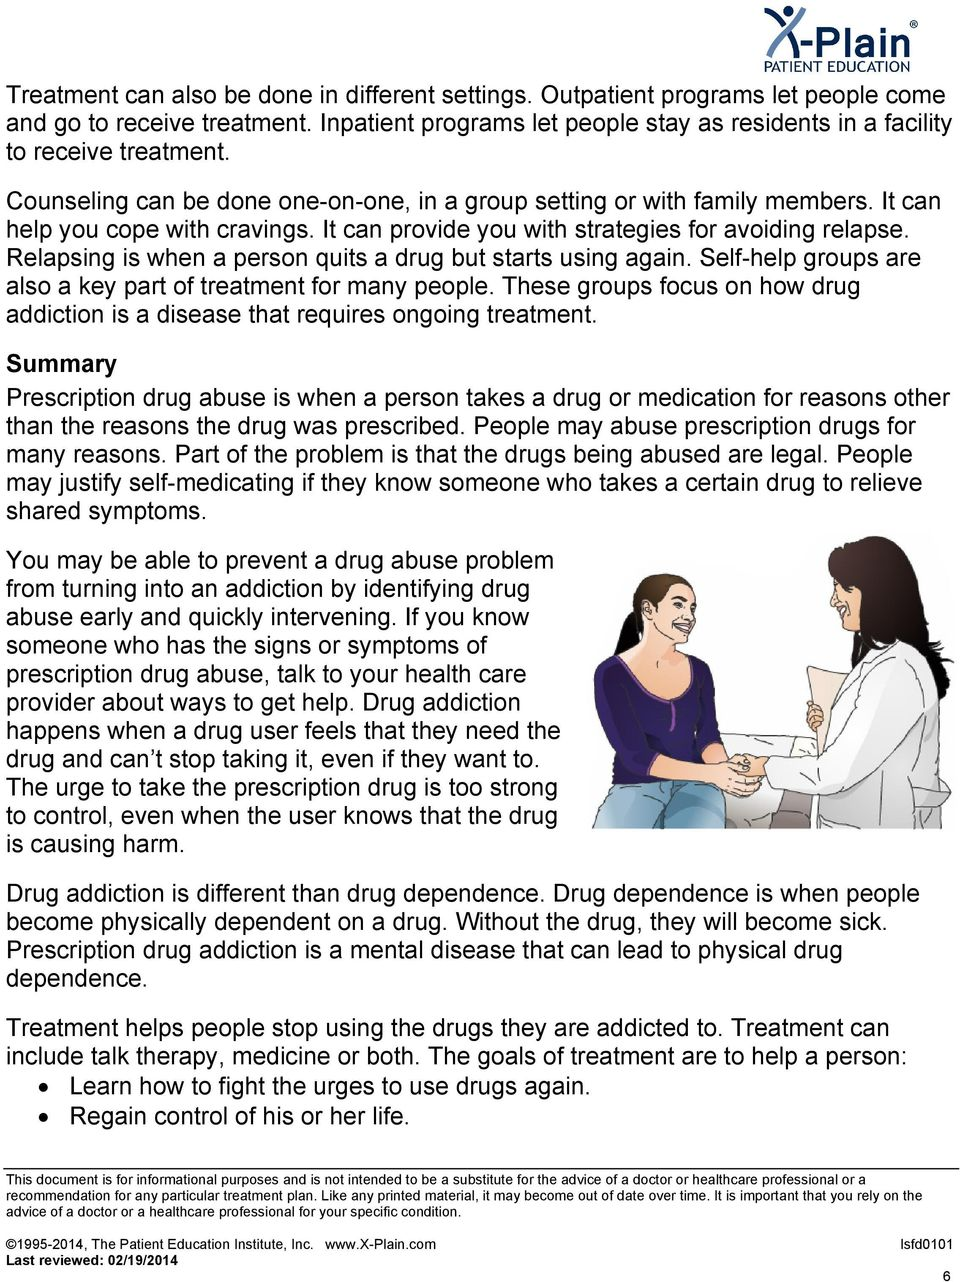 Relapsing is when a person quits a drug but starts using again. Self-help groups are also a key part of treatment for many people.